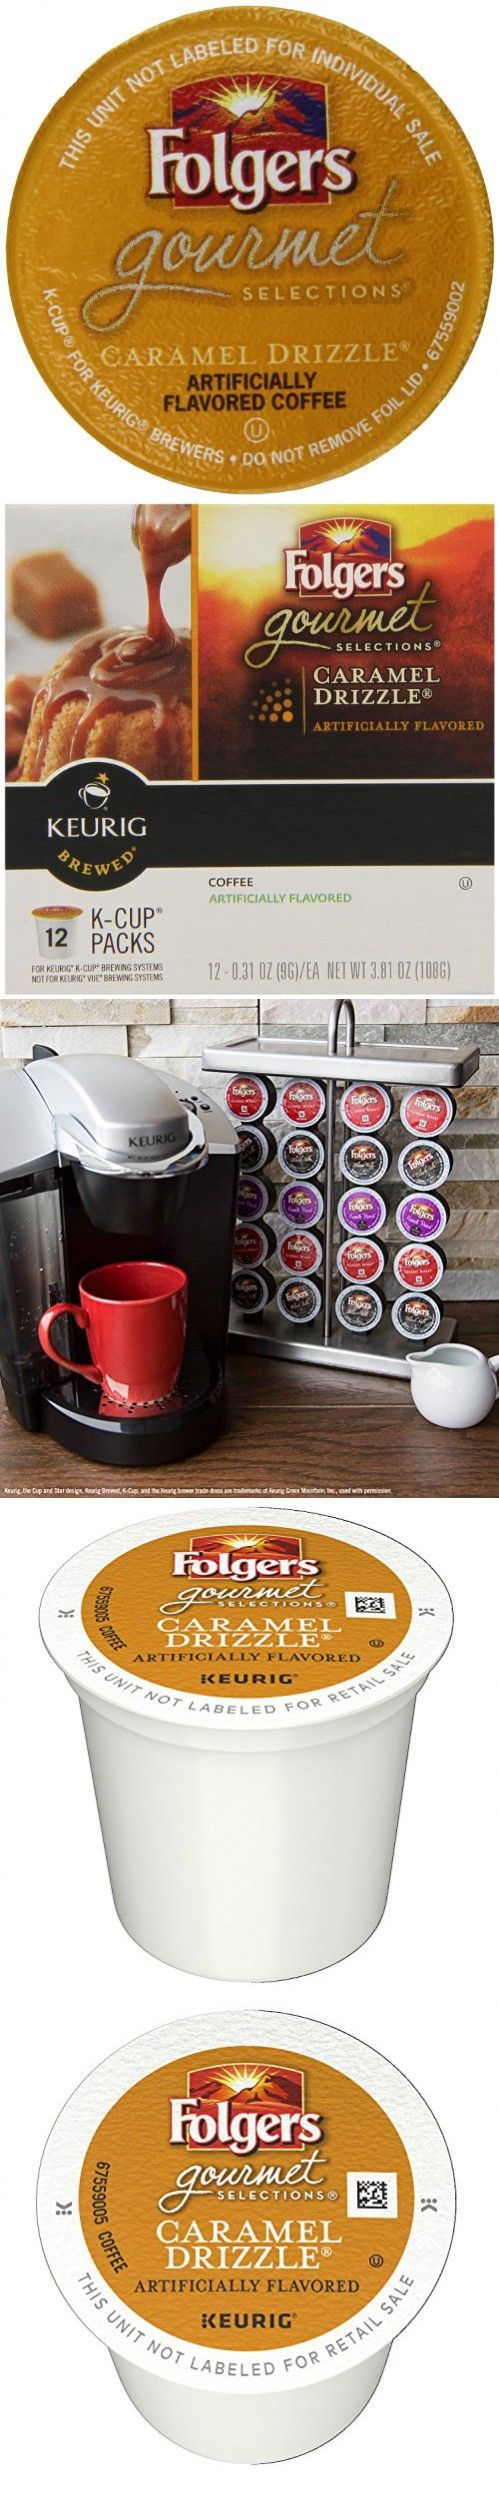 Folgers Caramel Drizzle Flavored Coffee, KCup Pods for